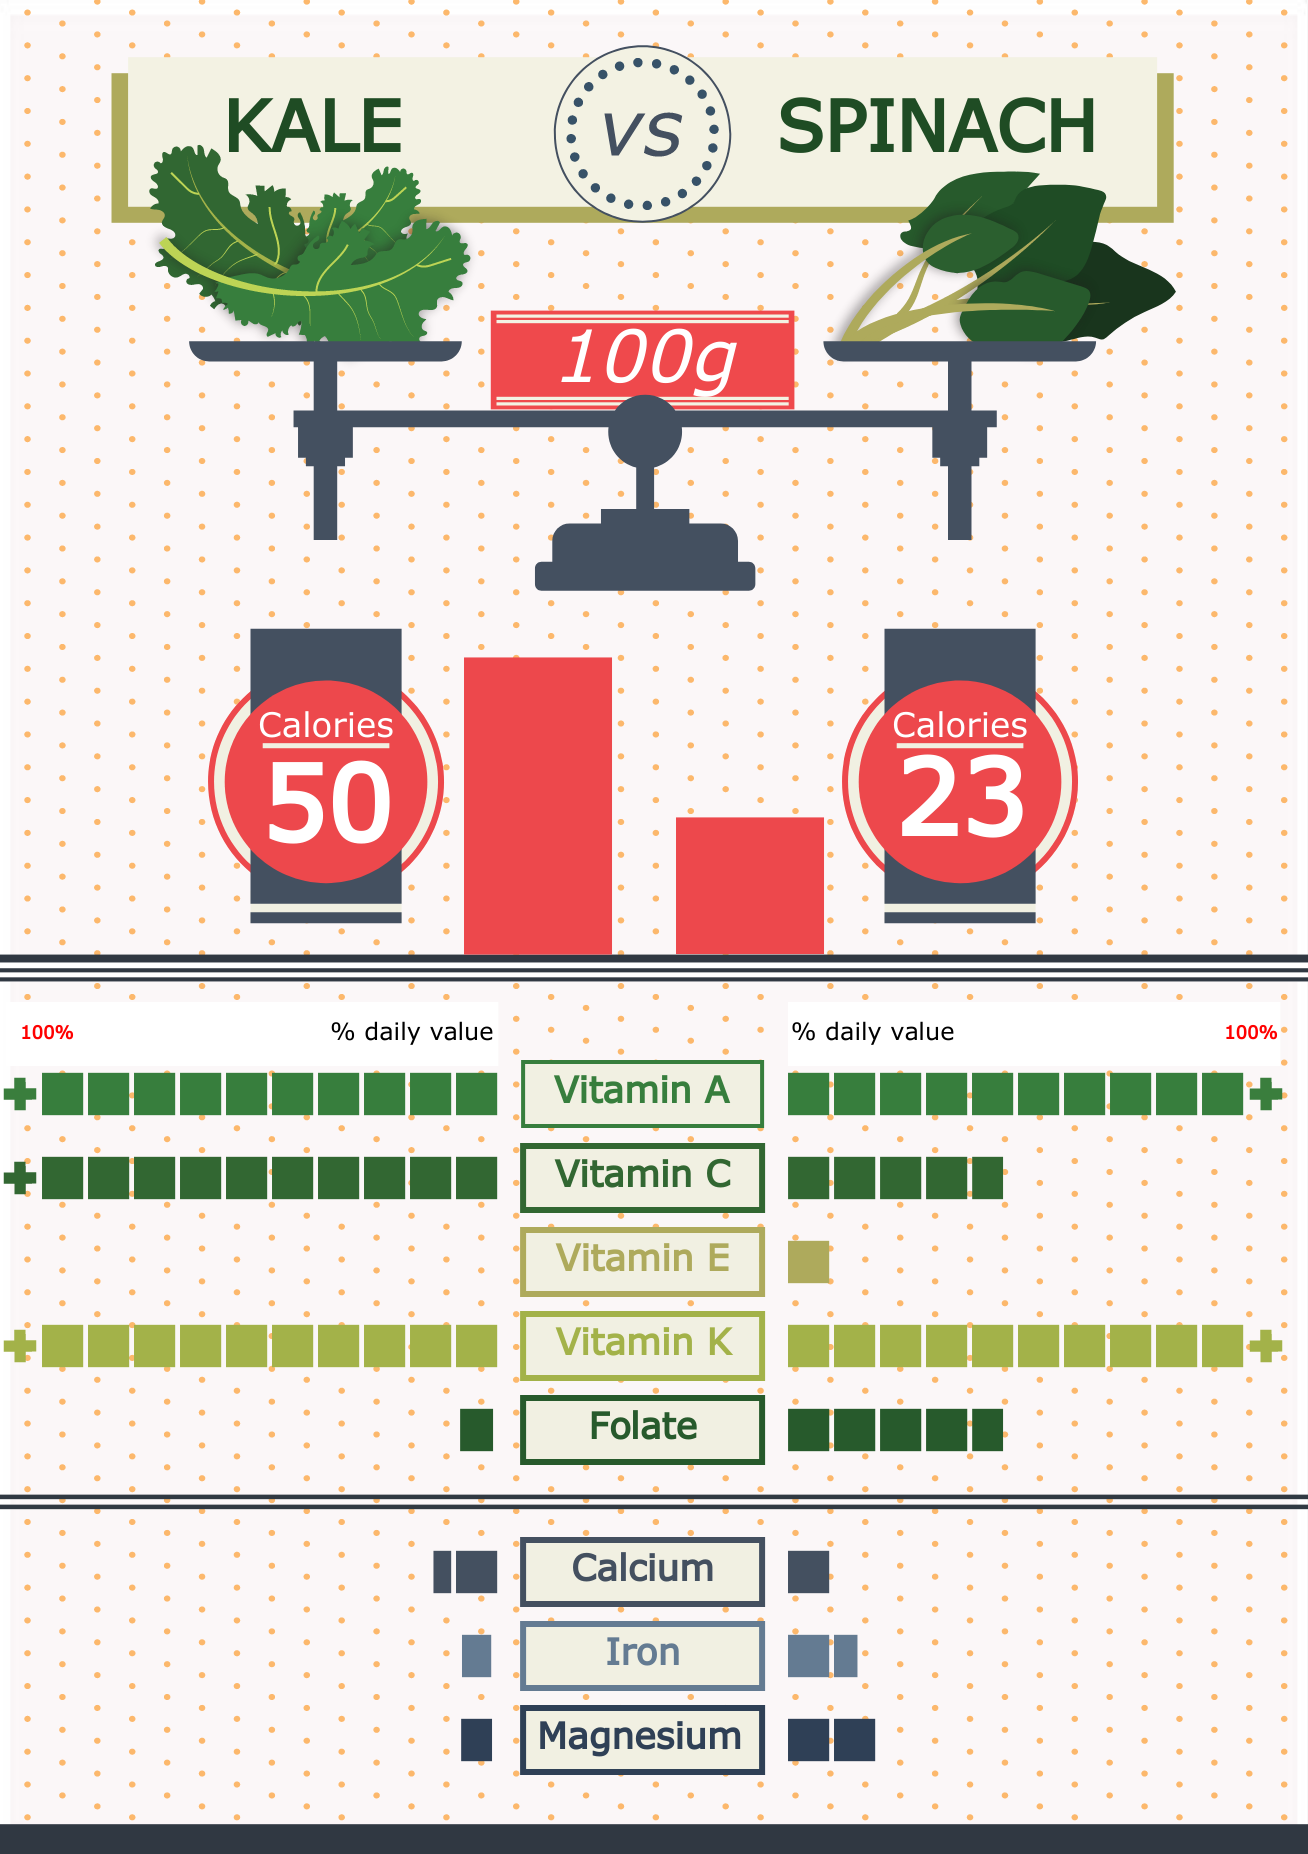 an infographic comparing kale and spinach.